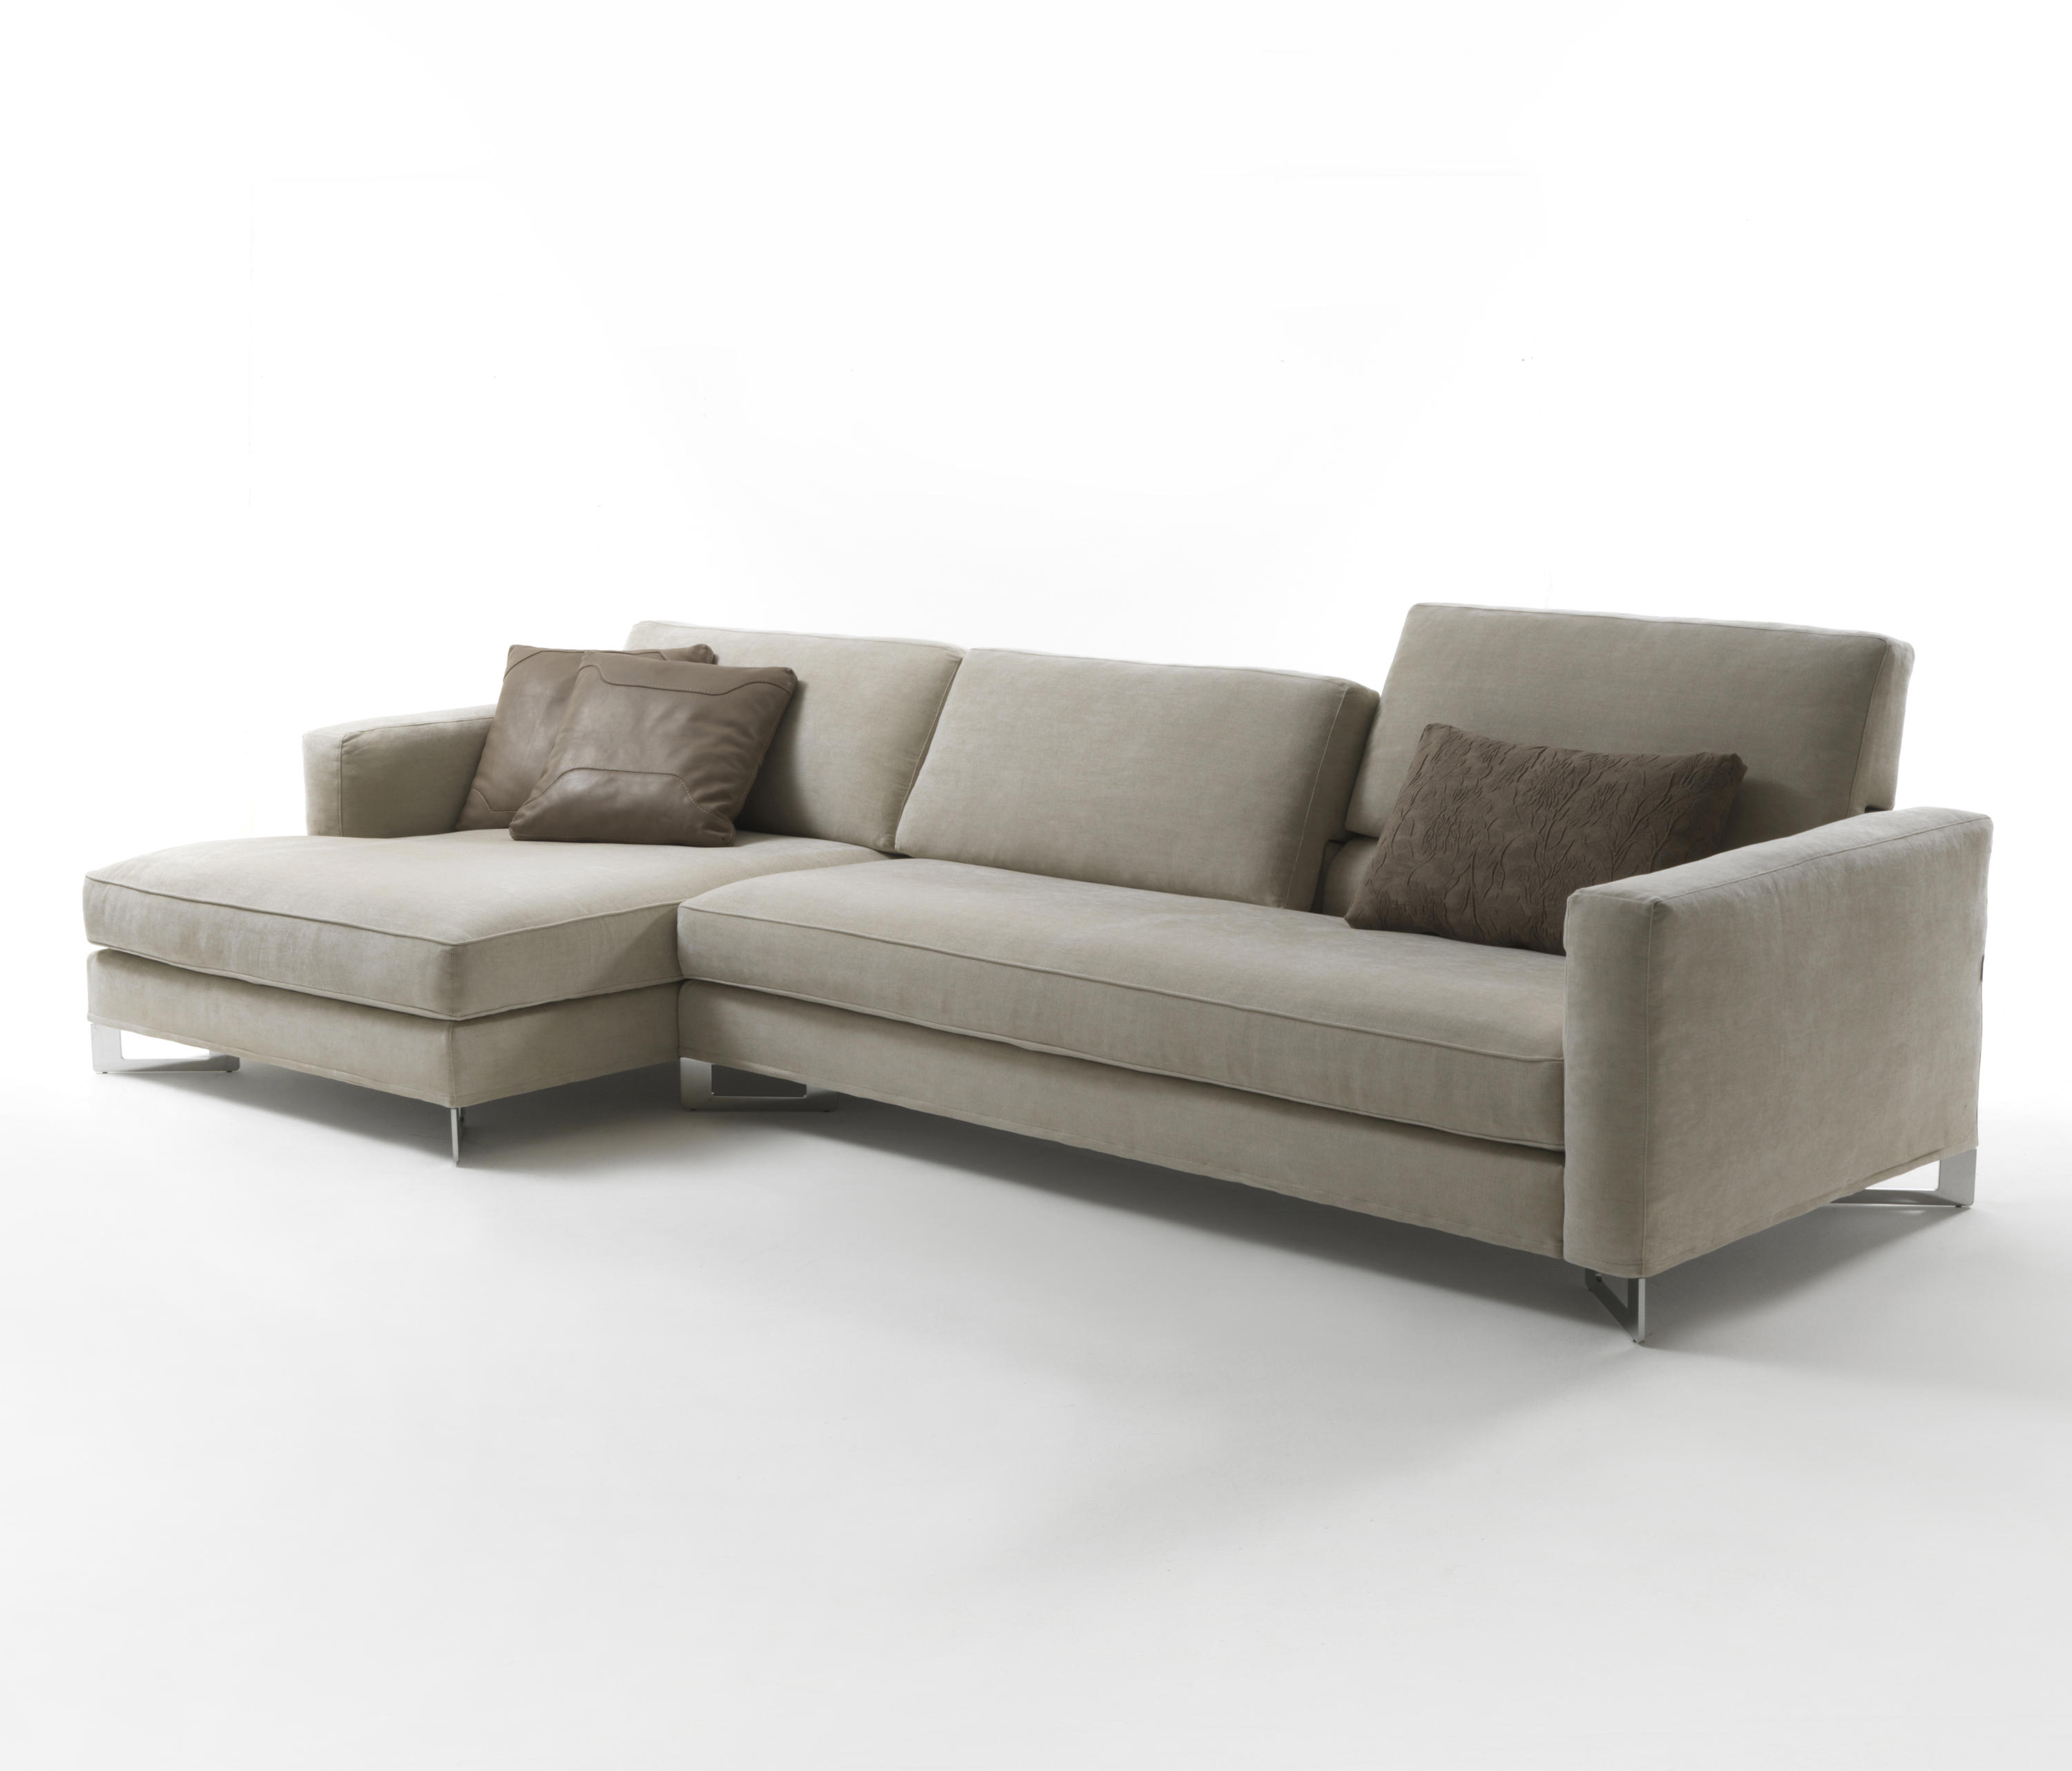 DAVIS OUT By Frigerio | Sofas ...